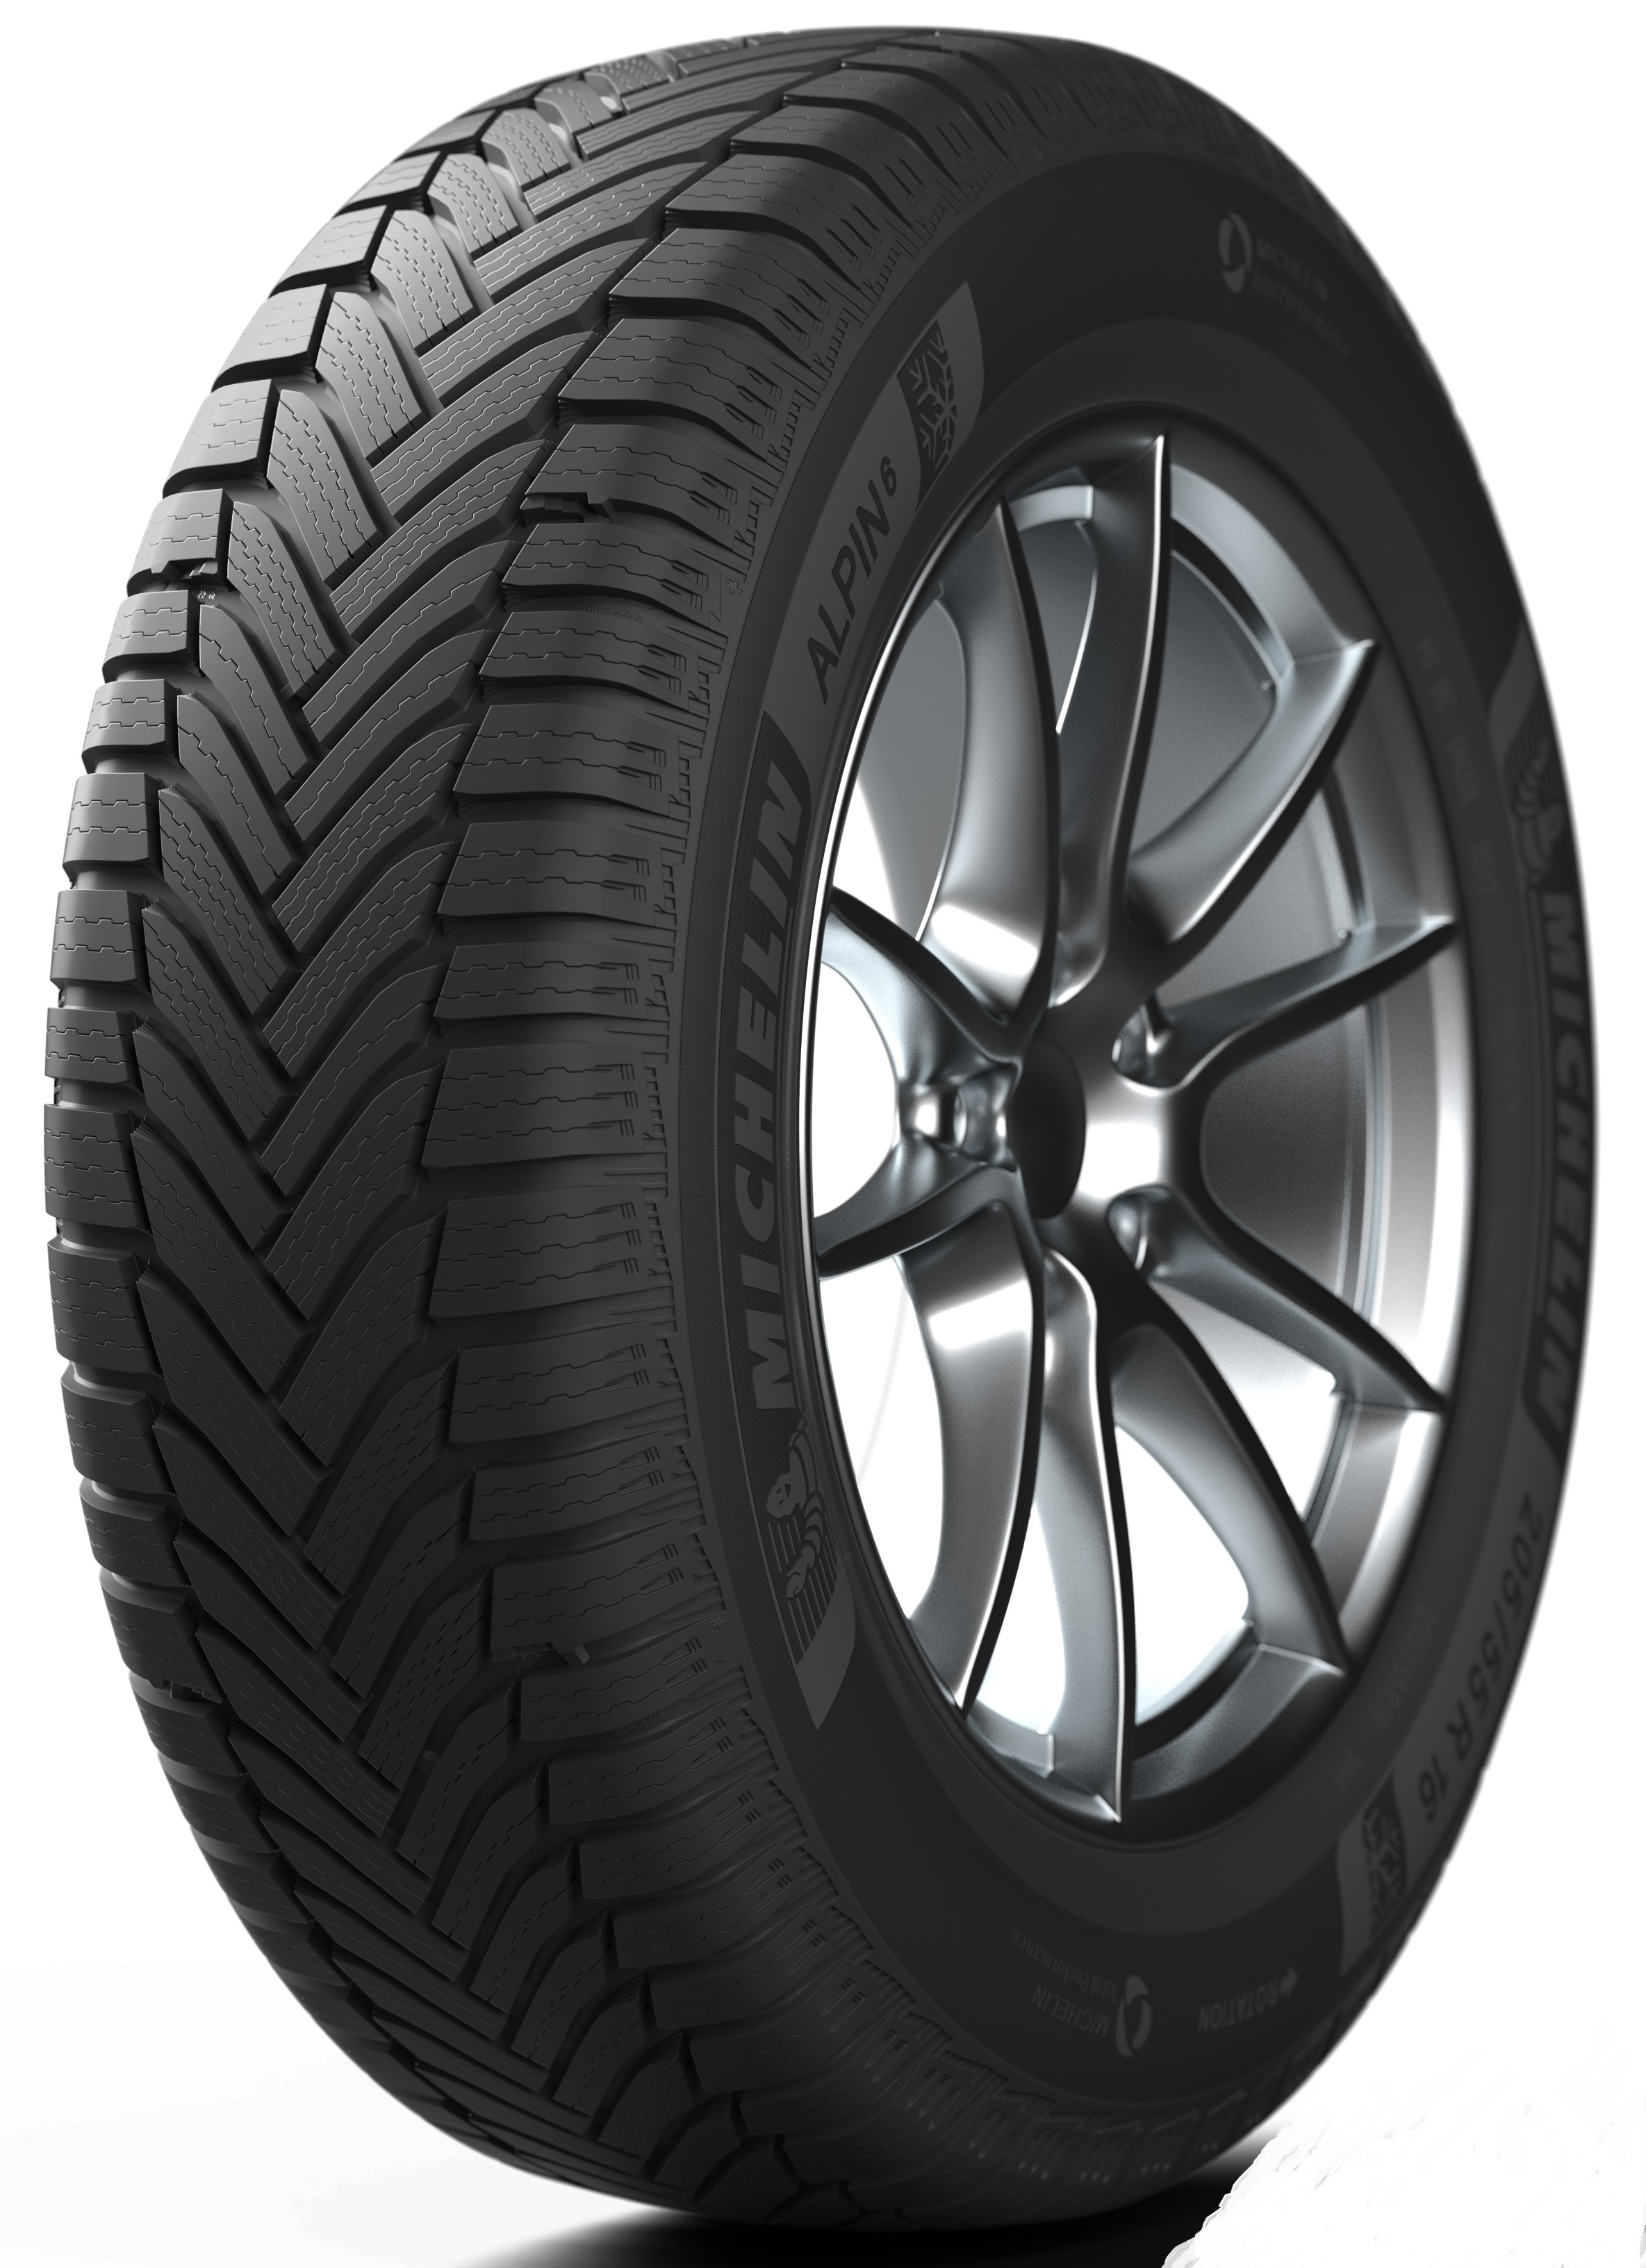 225/50R17 98V Alpin A6 XL Michelin